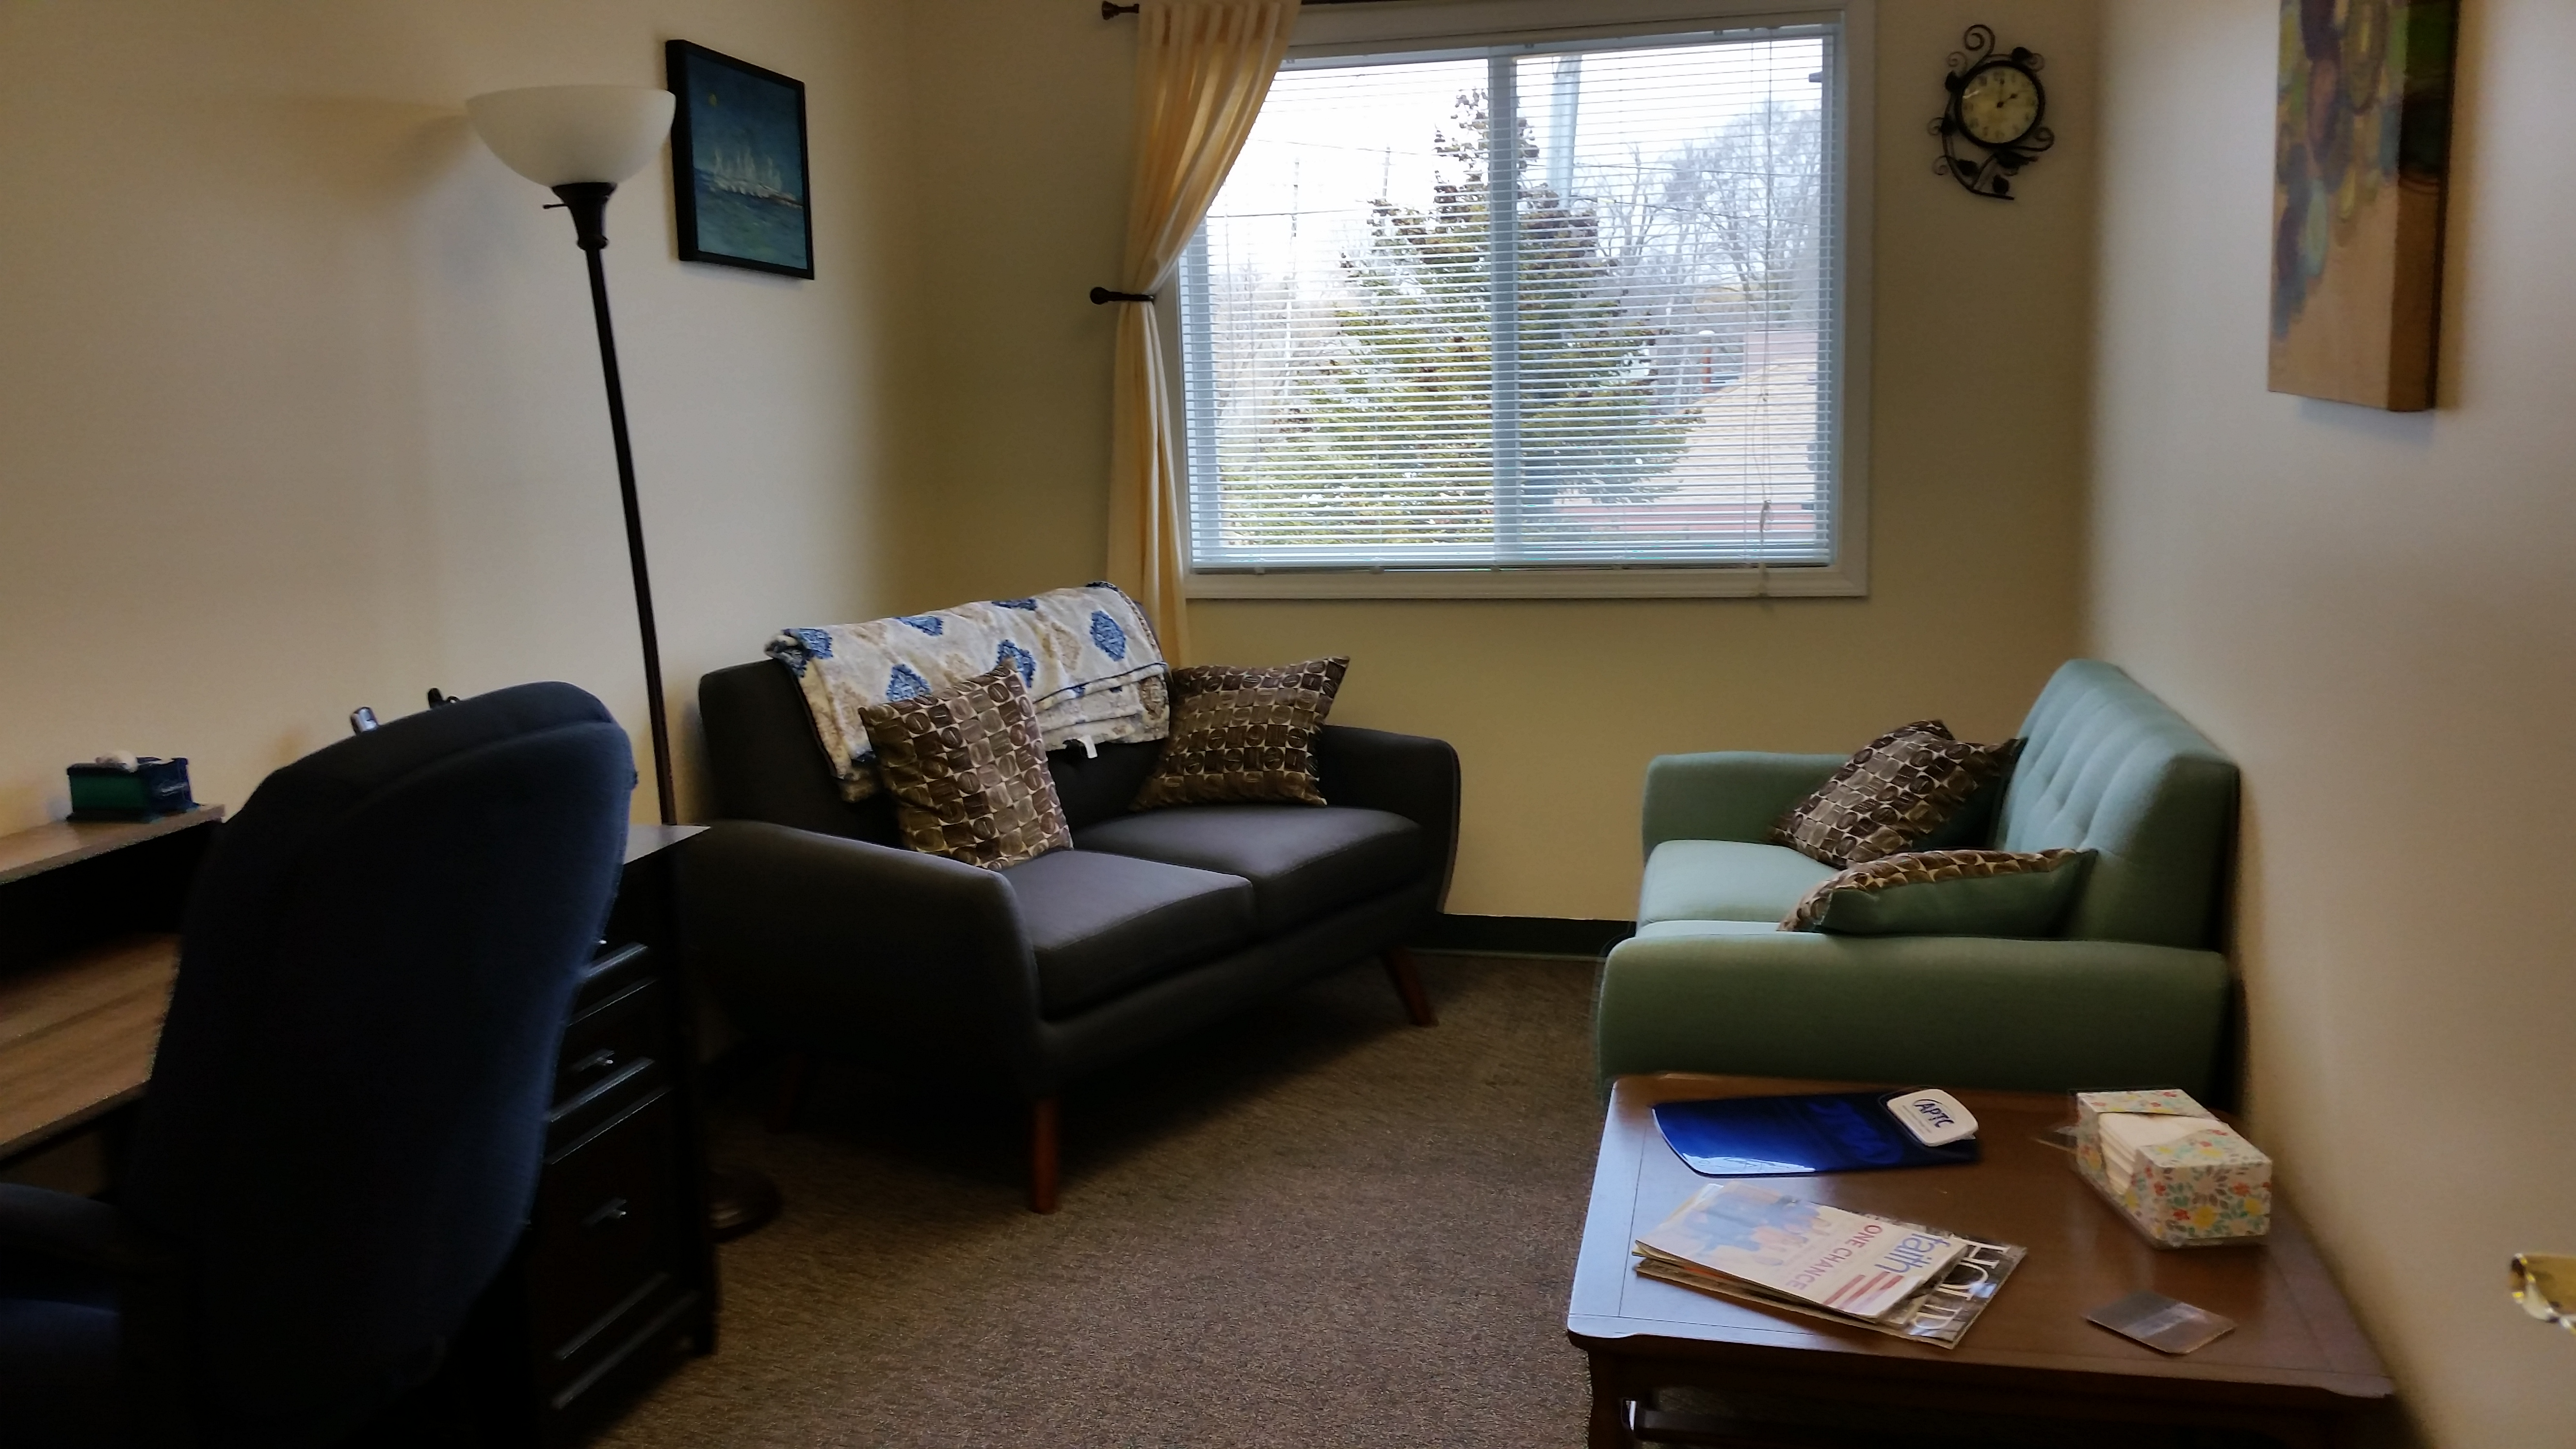 3rd therapist office